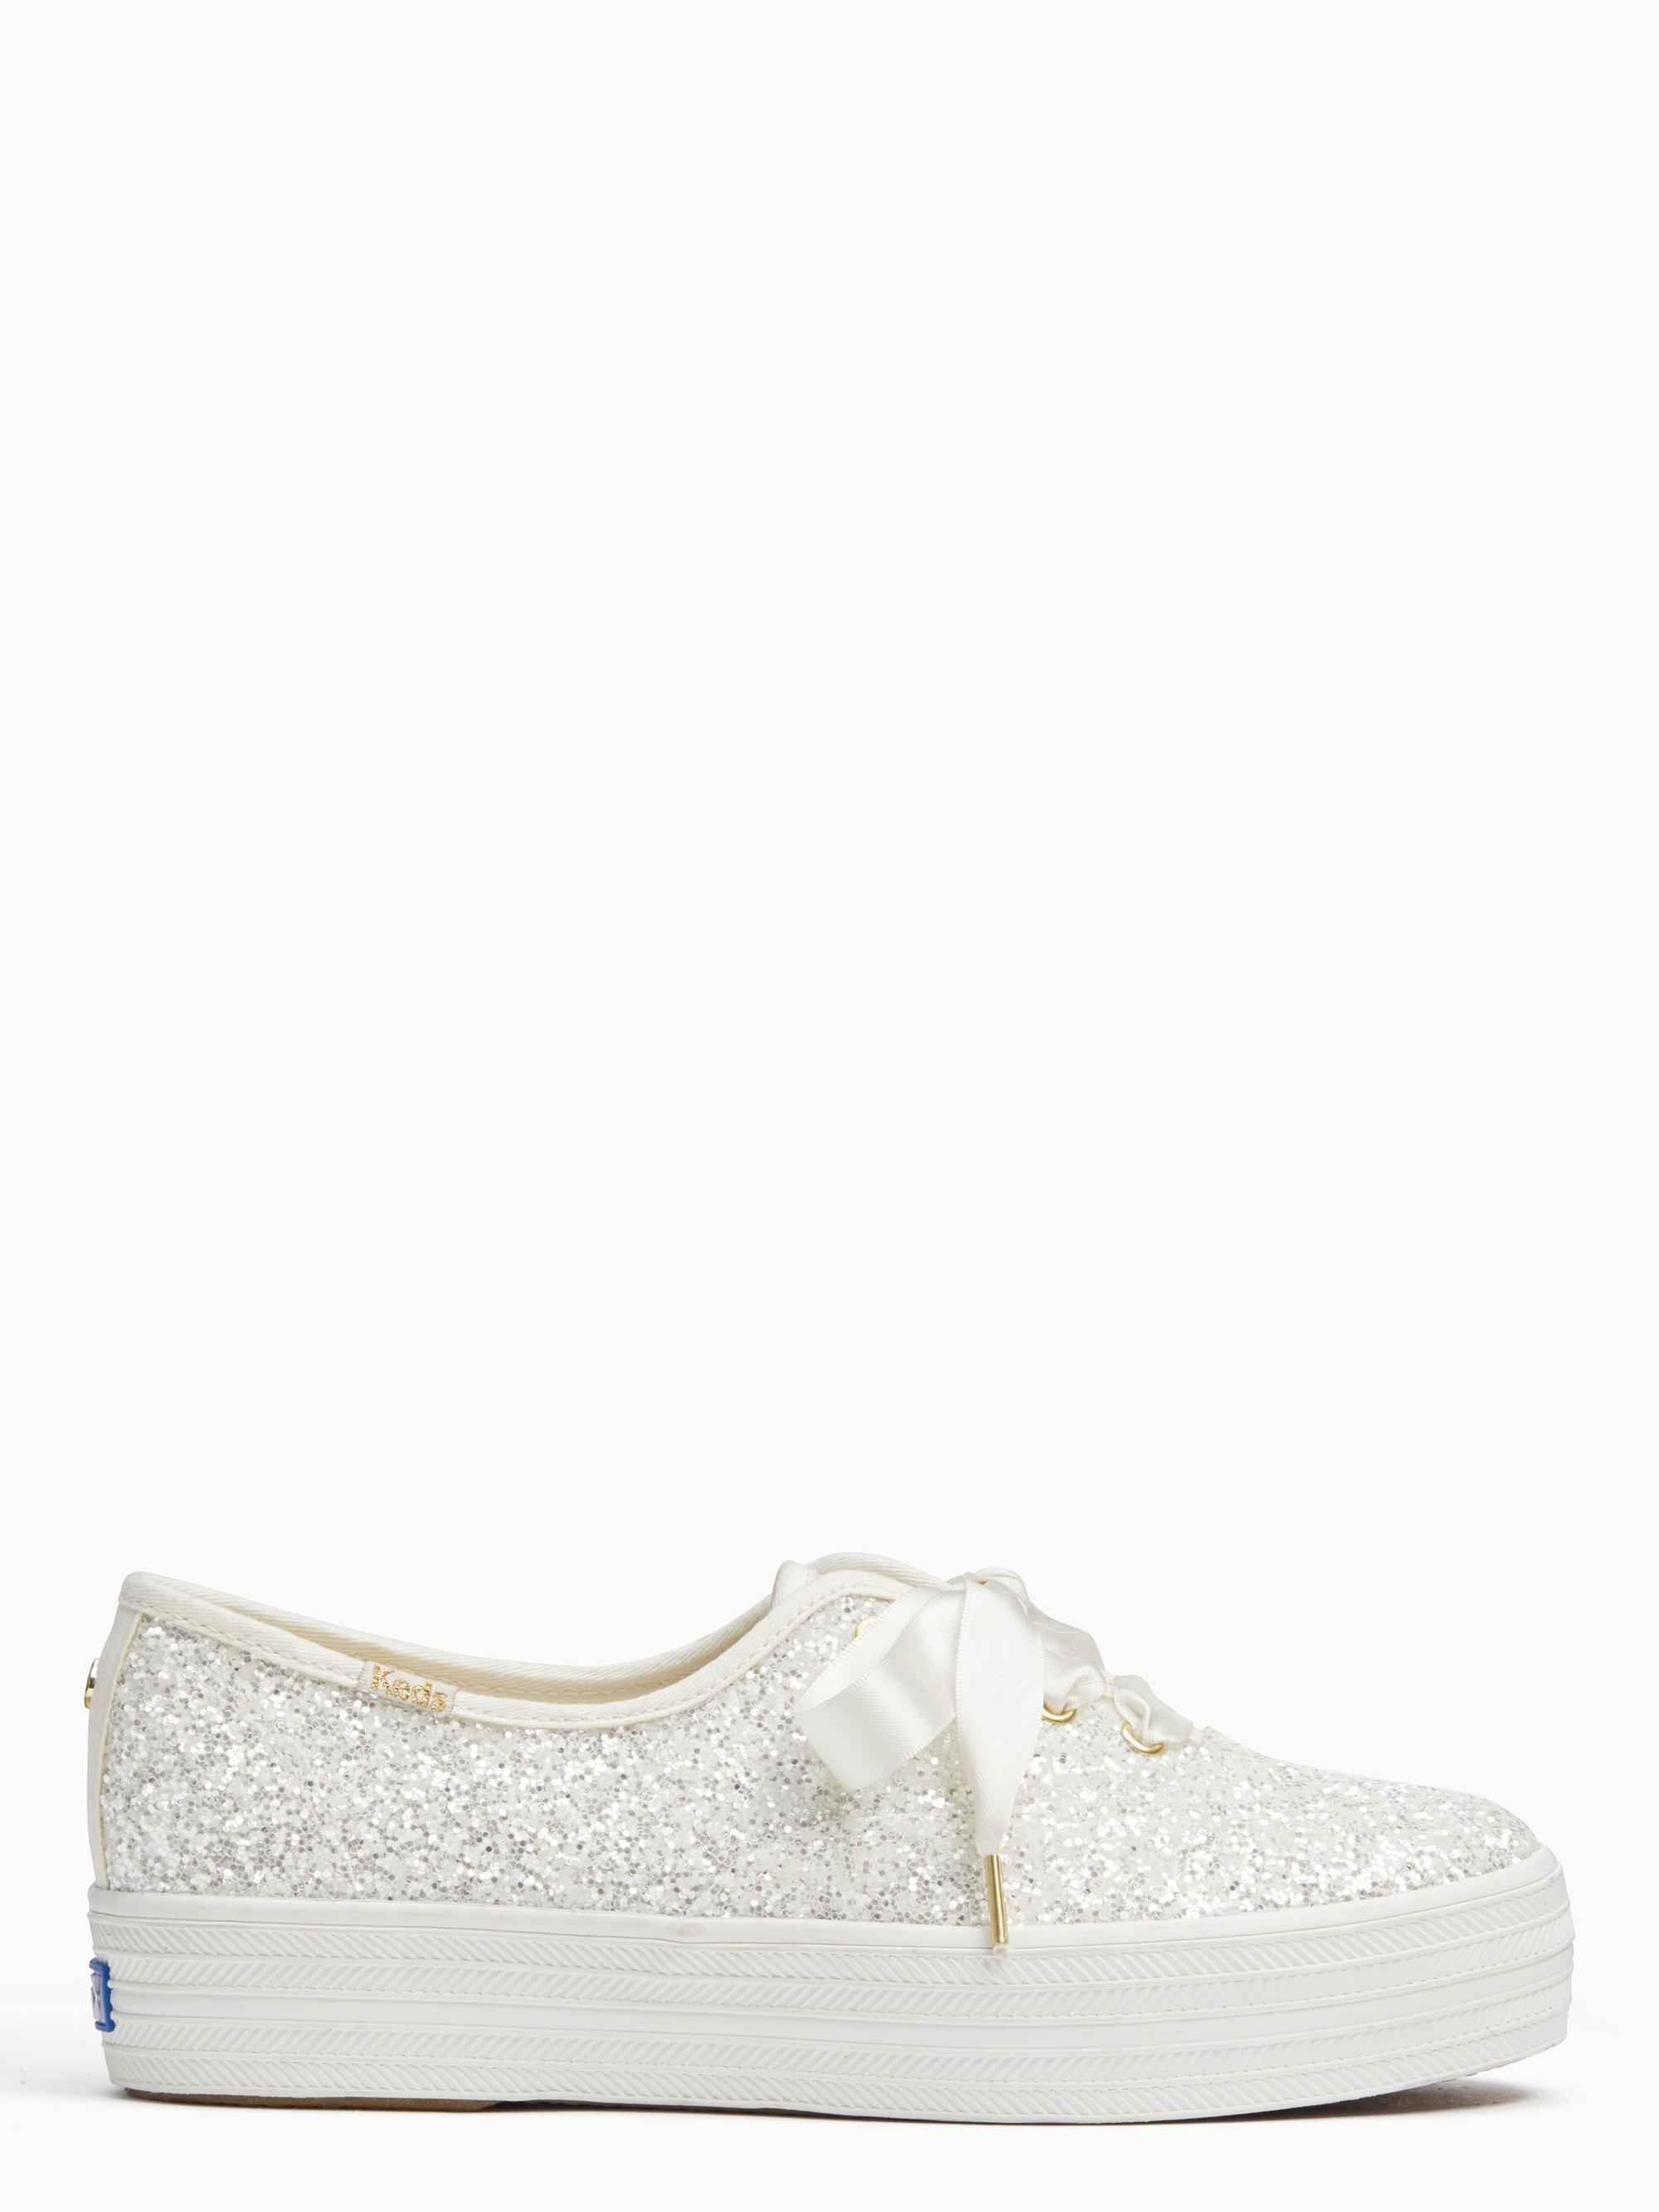 b23a34d2c1b5 Kate Spade Keds X New York Triple Glitter Sneakers in Natural - Lyst